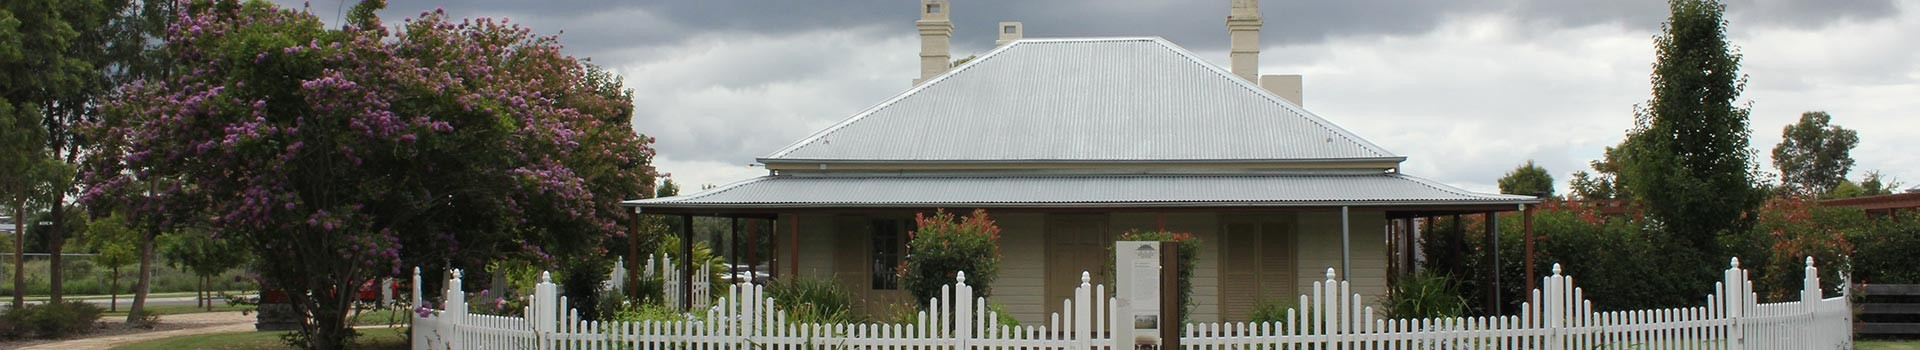 What You Need to Know About NSW's New Heritage Design Guidelines hero image